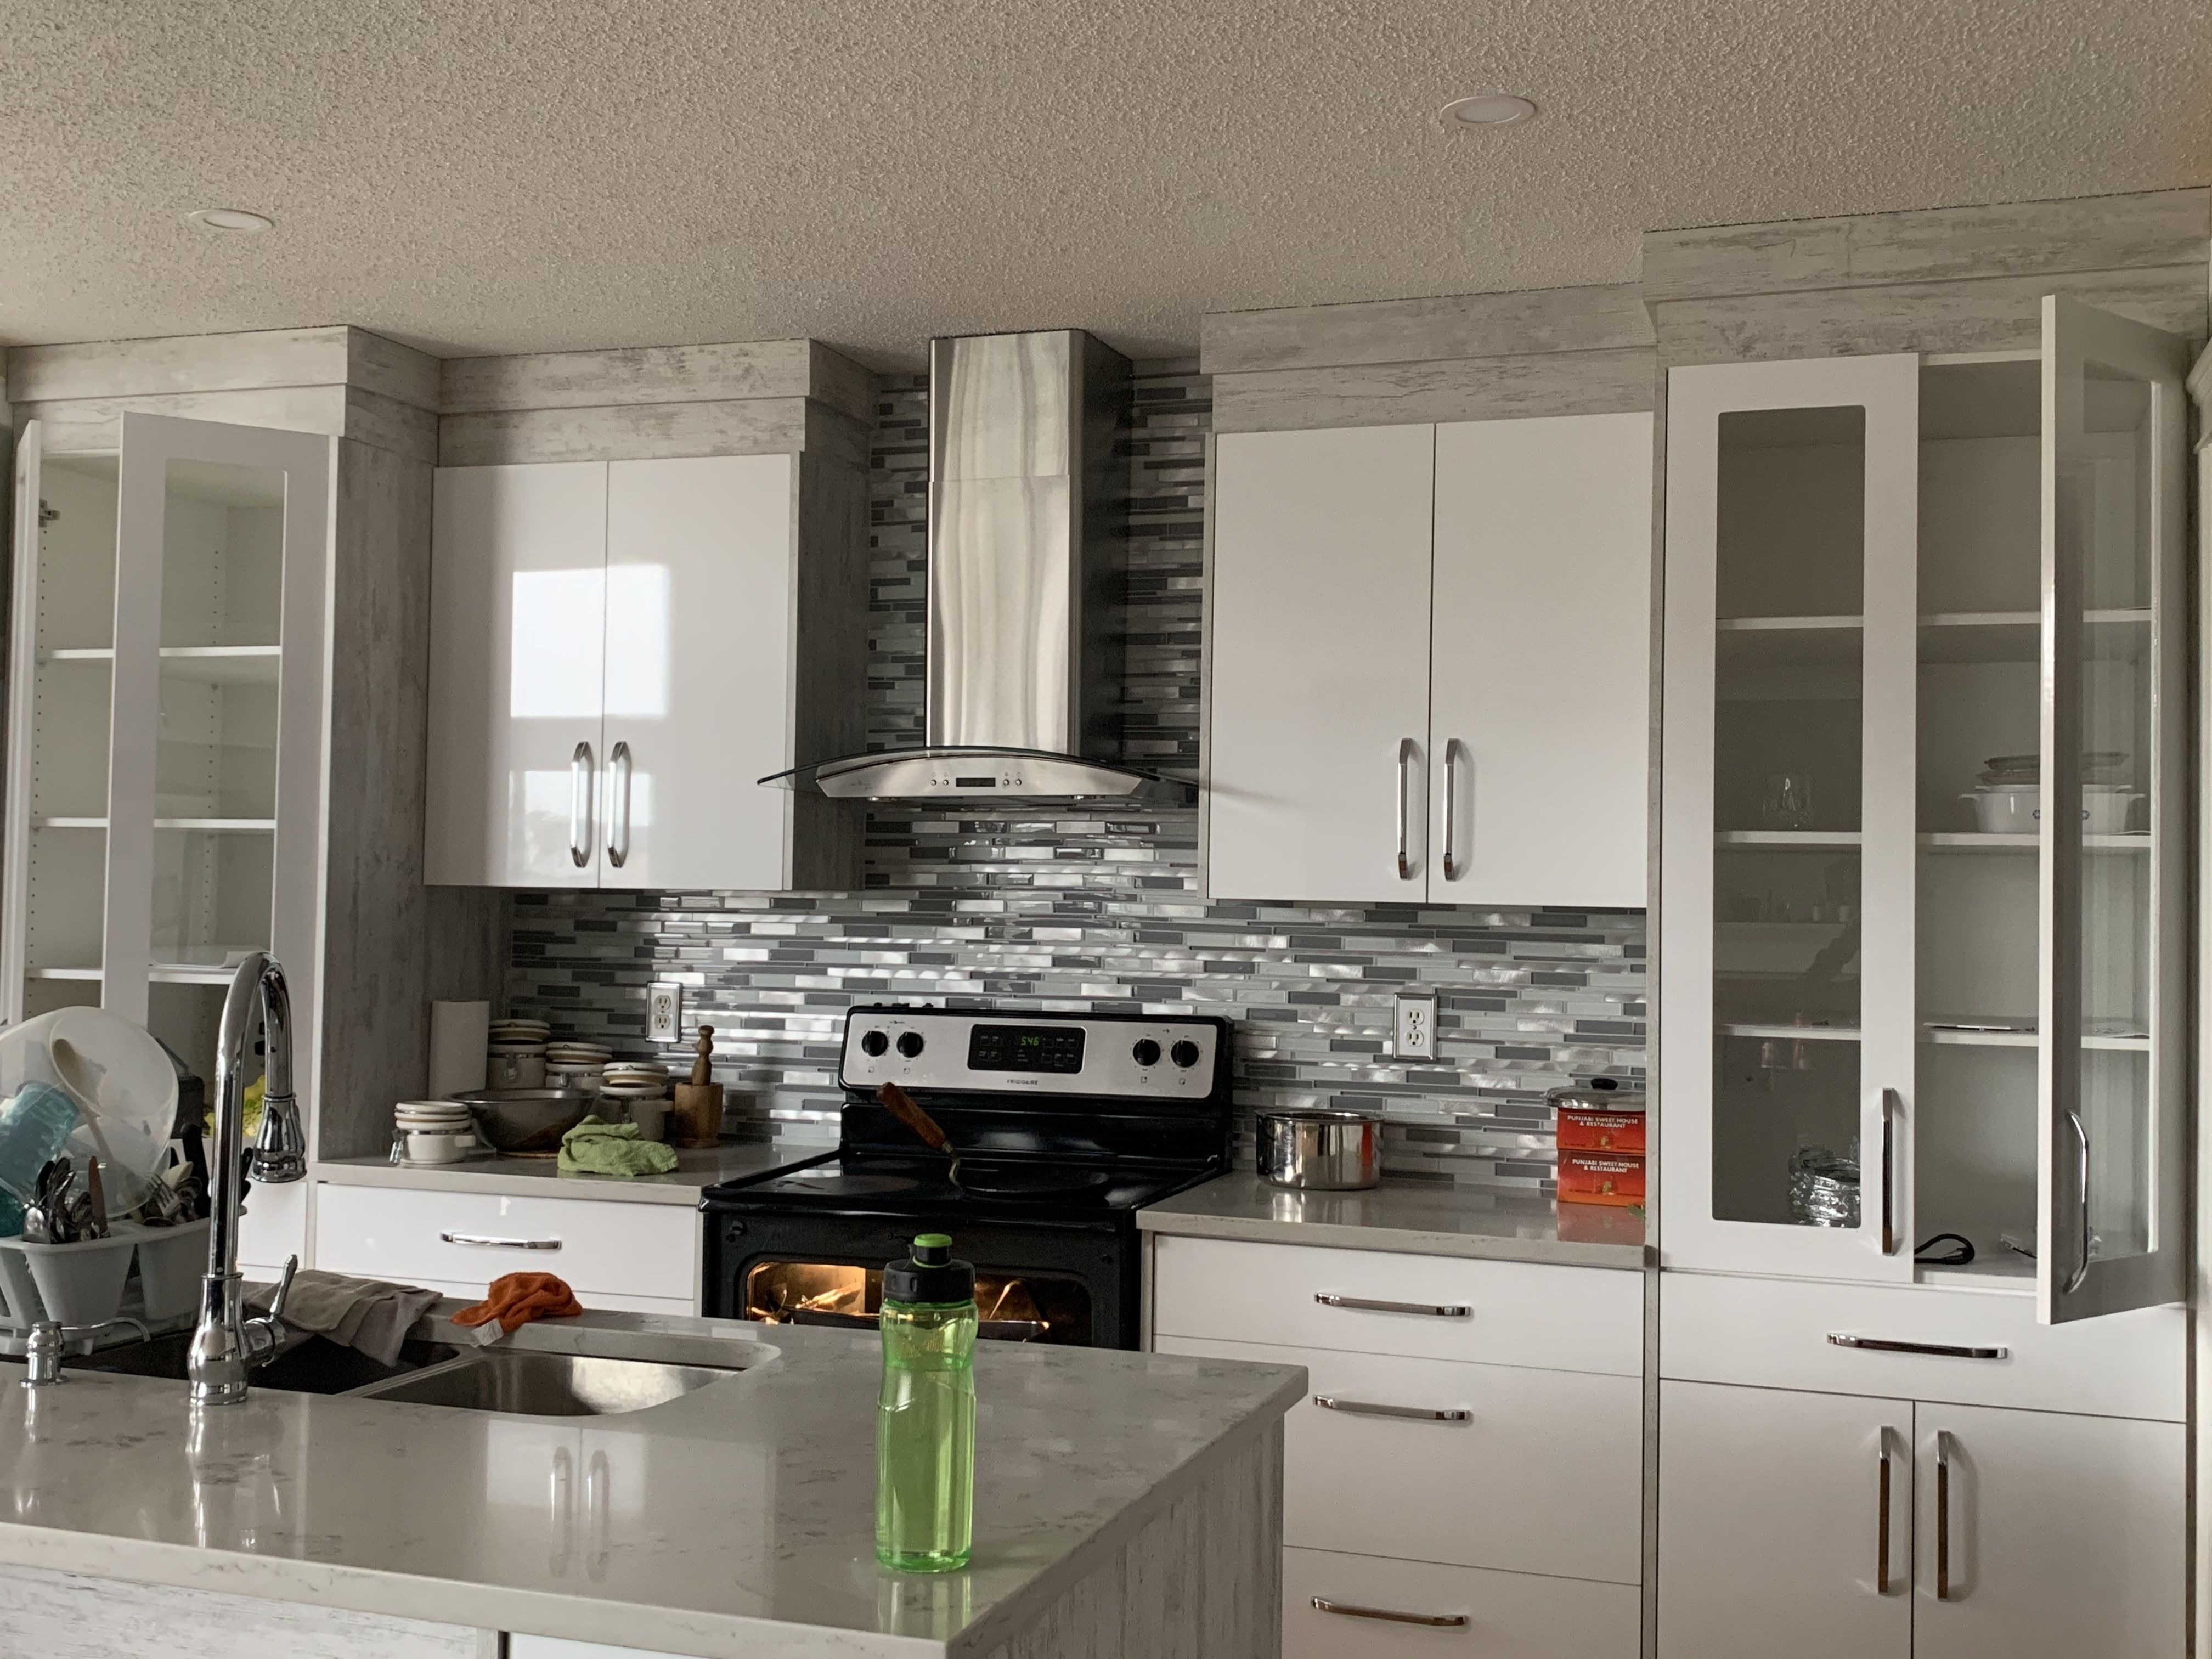 Kitchen Cabinet Design Calgary In 2020 Kitchen Cabinet Design Kitchen Craft Cabinets Kitchen Cabinets